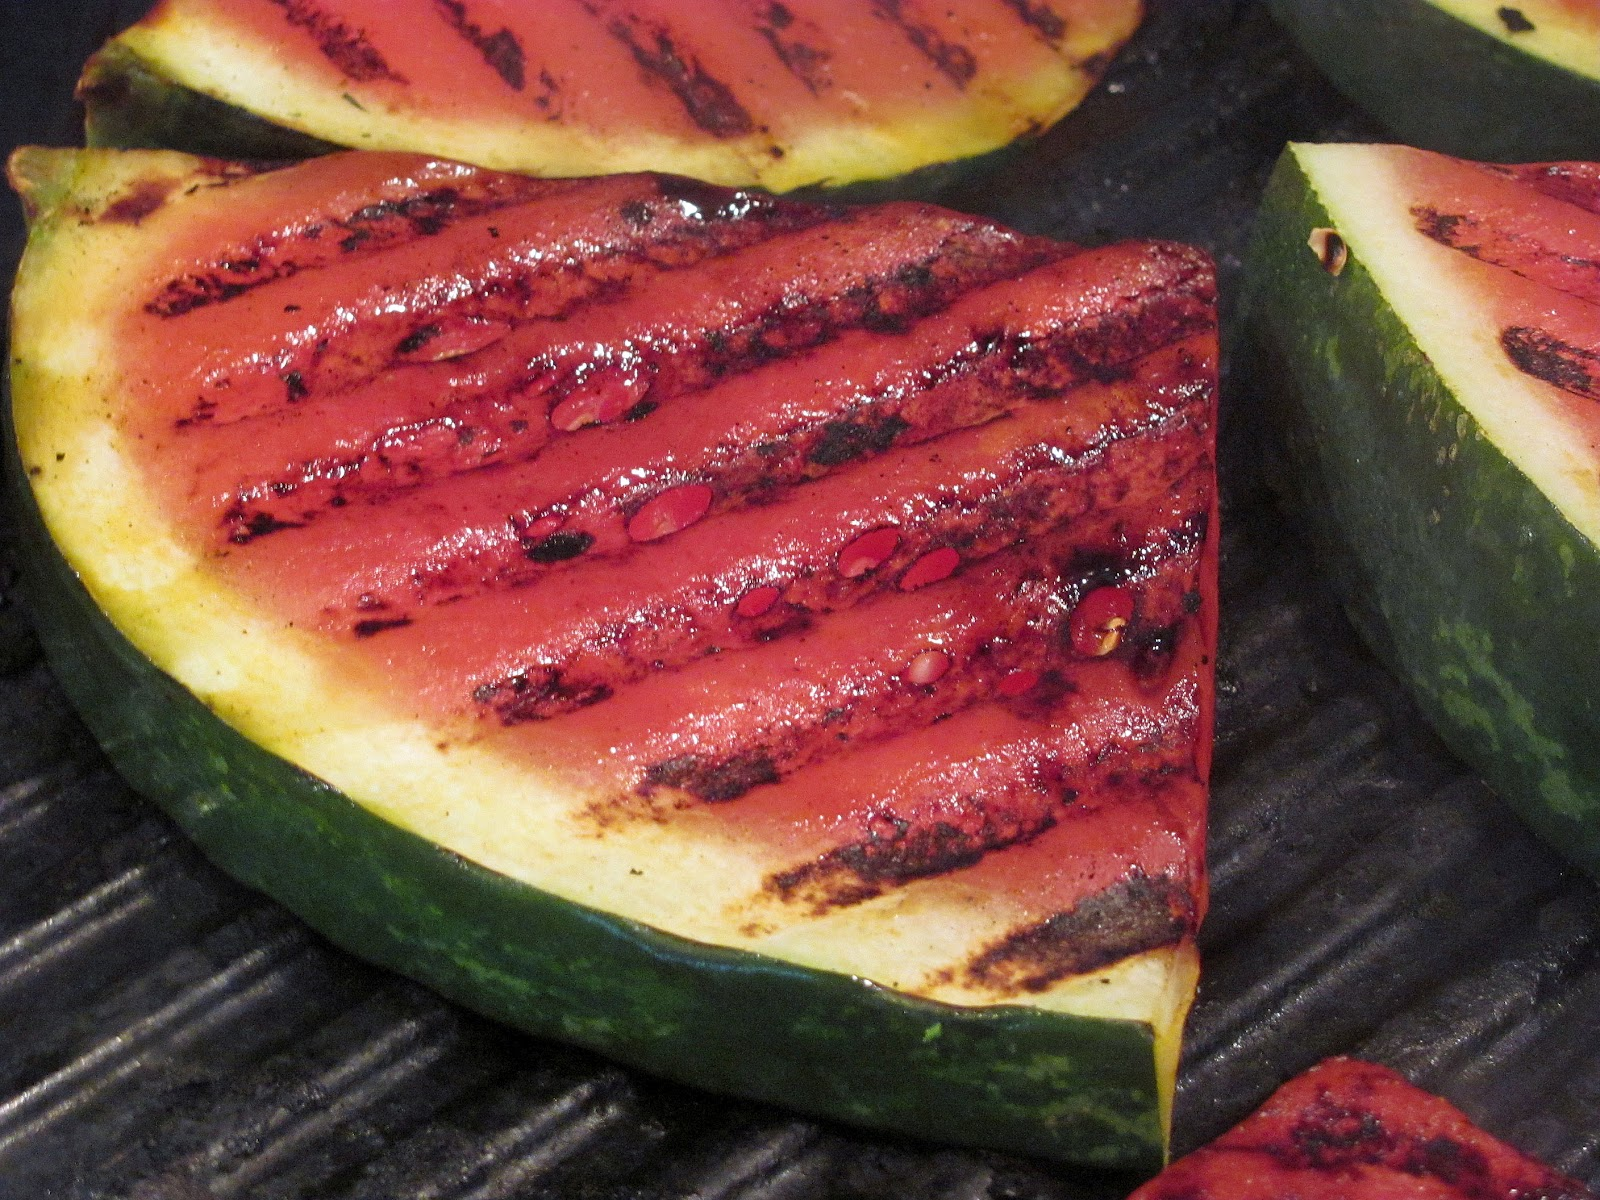 For a more nutritious Memorial Day grill watermelon ...